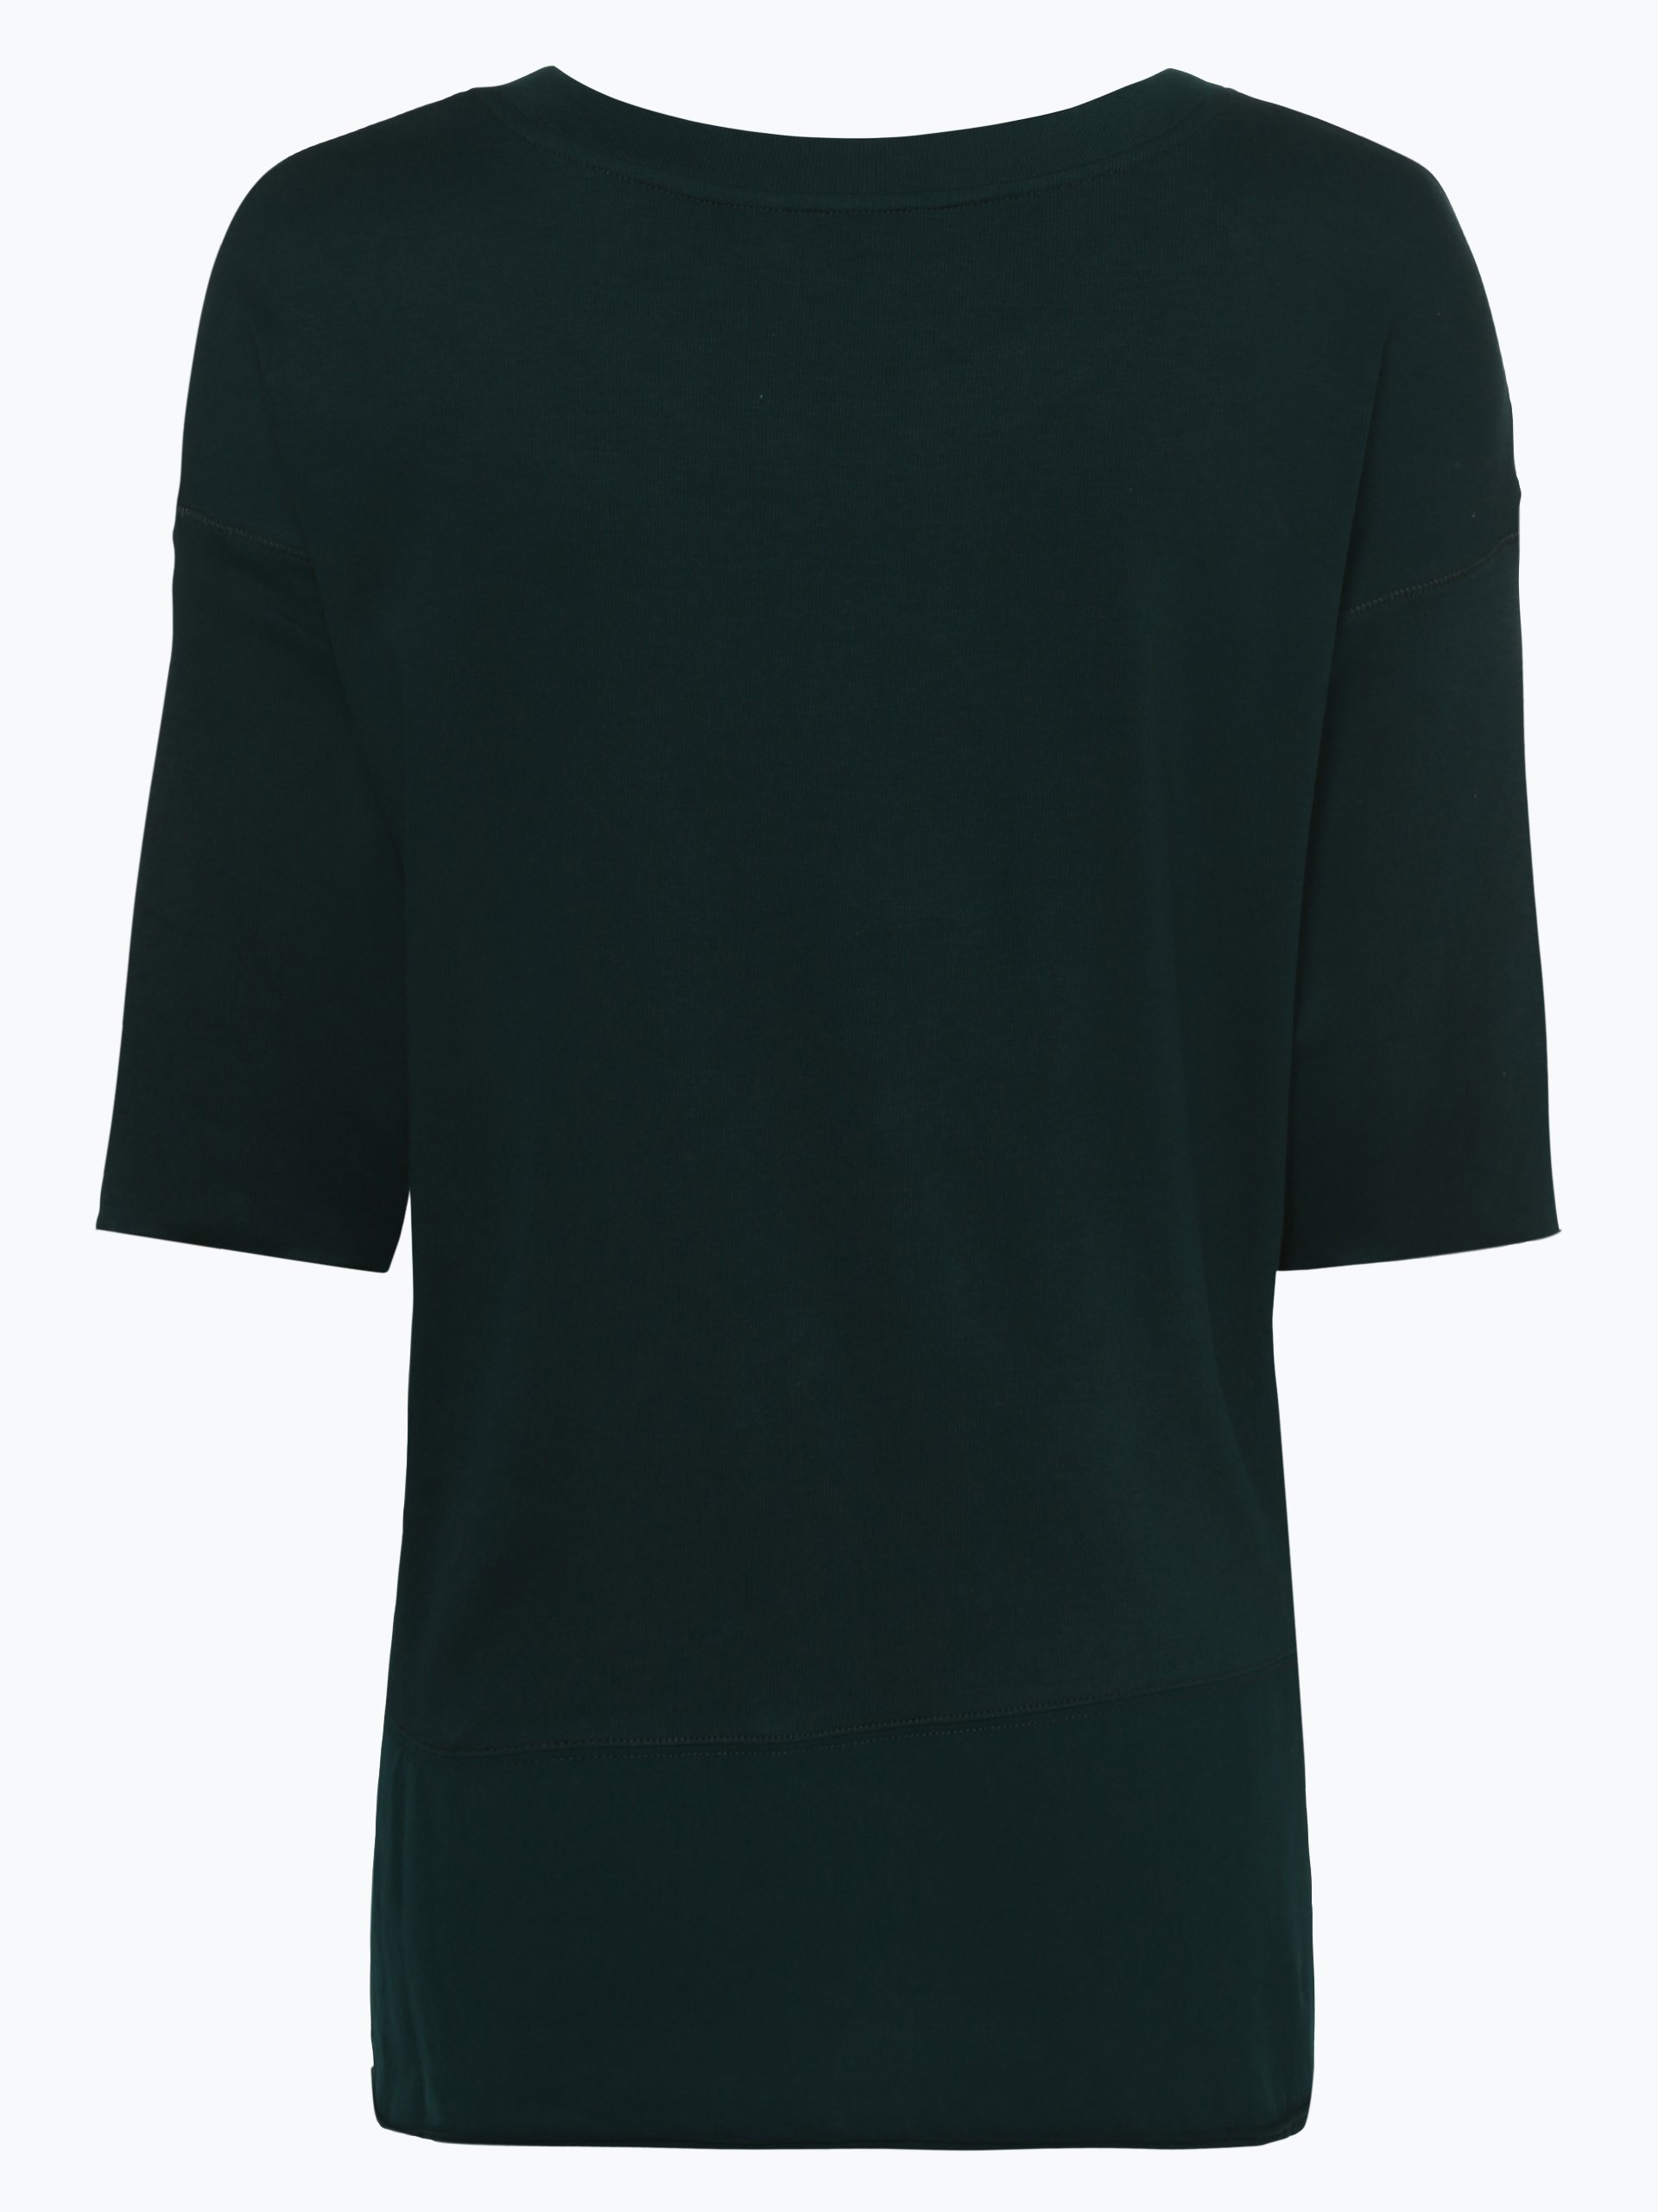 Marc Cain Sports Damen Blusenshirt